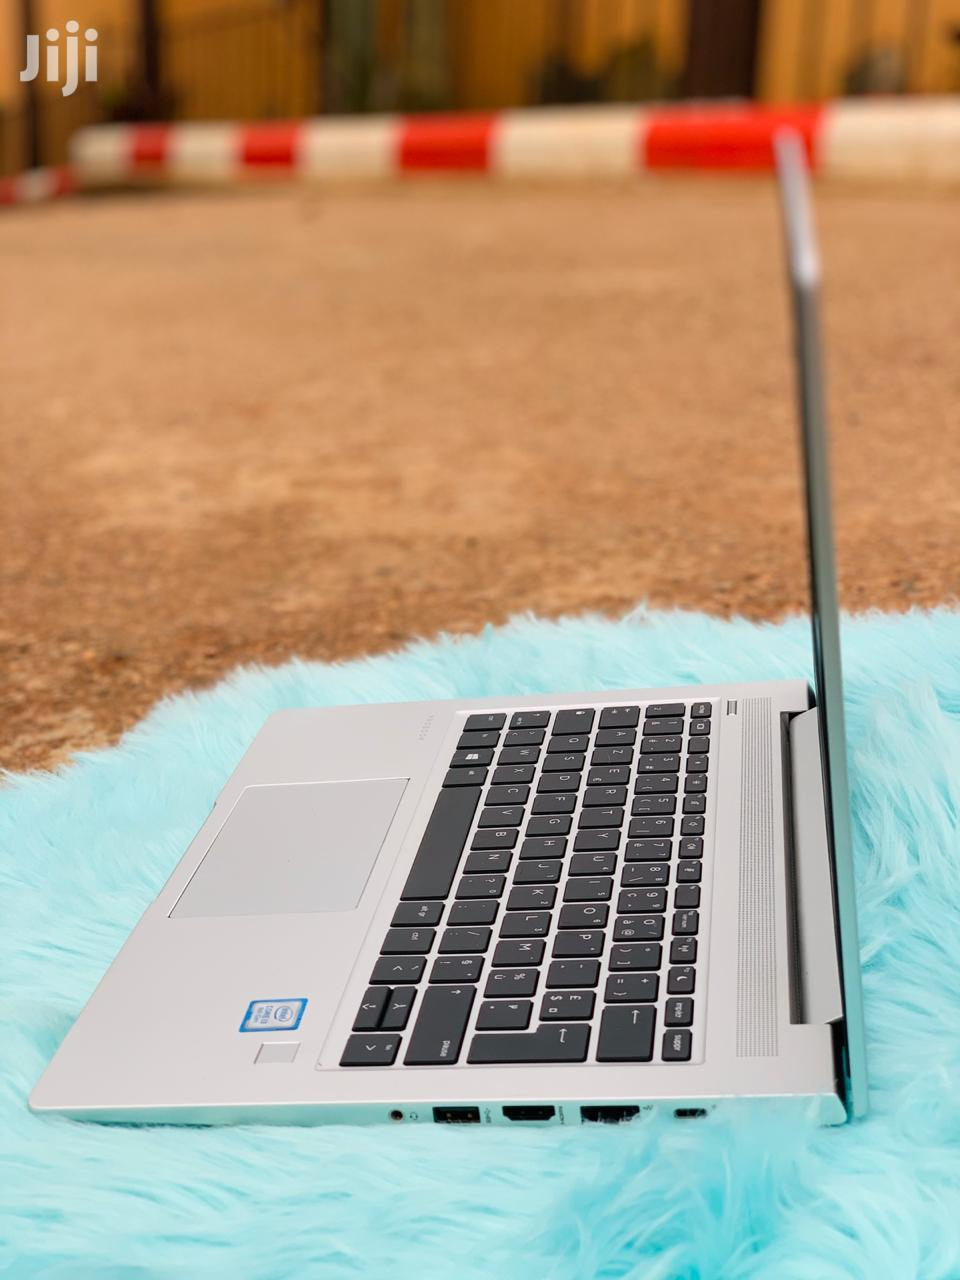 New Laptop HP ProBook 430 G6 8GB Intel SSHD (Hybrid) 500GB | Laptops & Computers for sale in Kampala, Central Region, Uganda